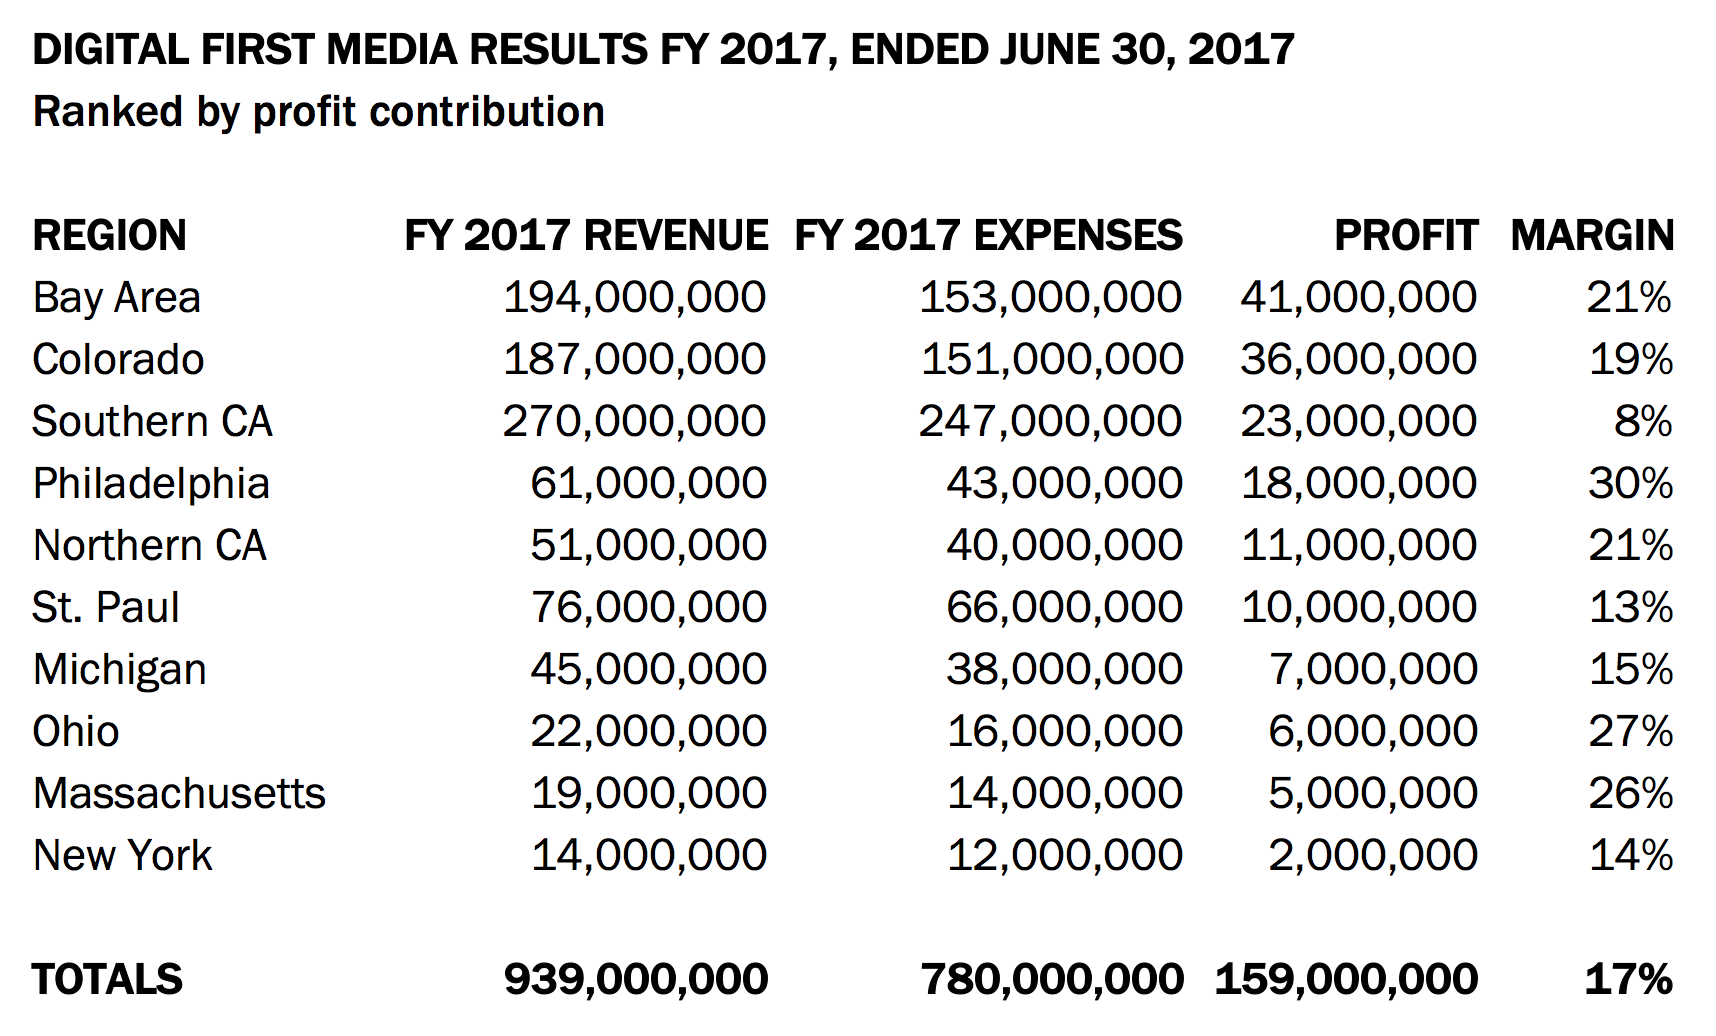 Digital First Media results FY 2017, ended june 30, 2017. Ranked by profit contribution.